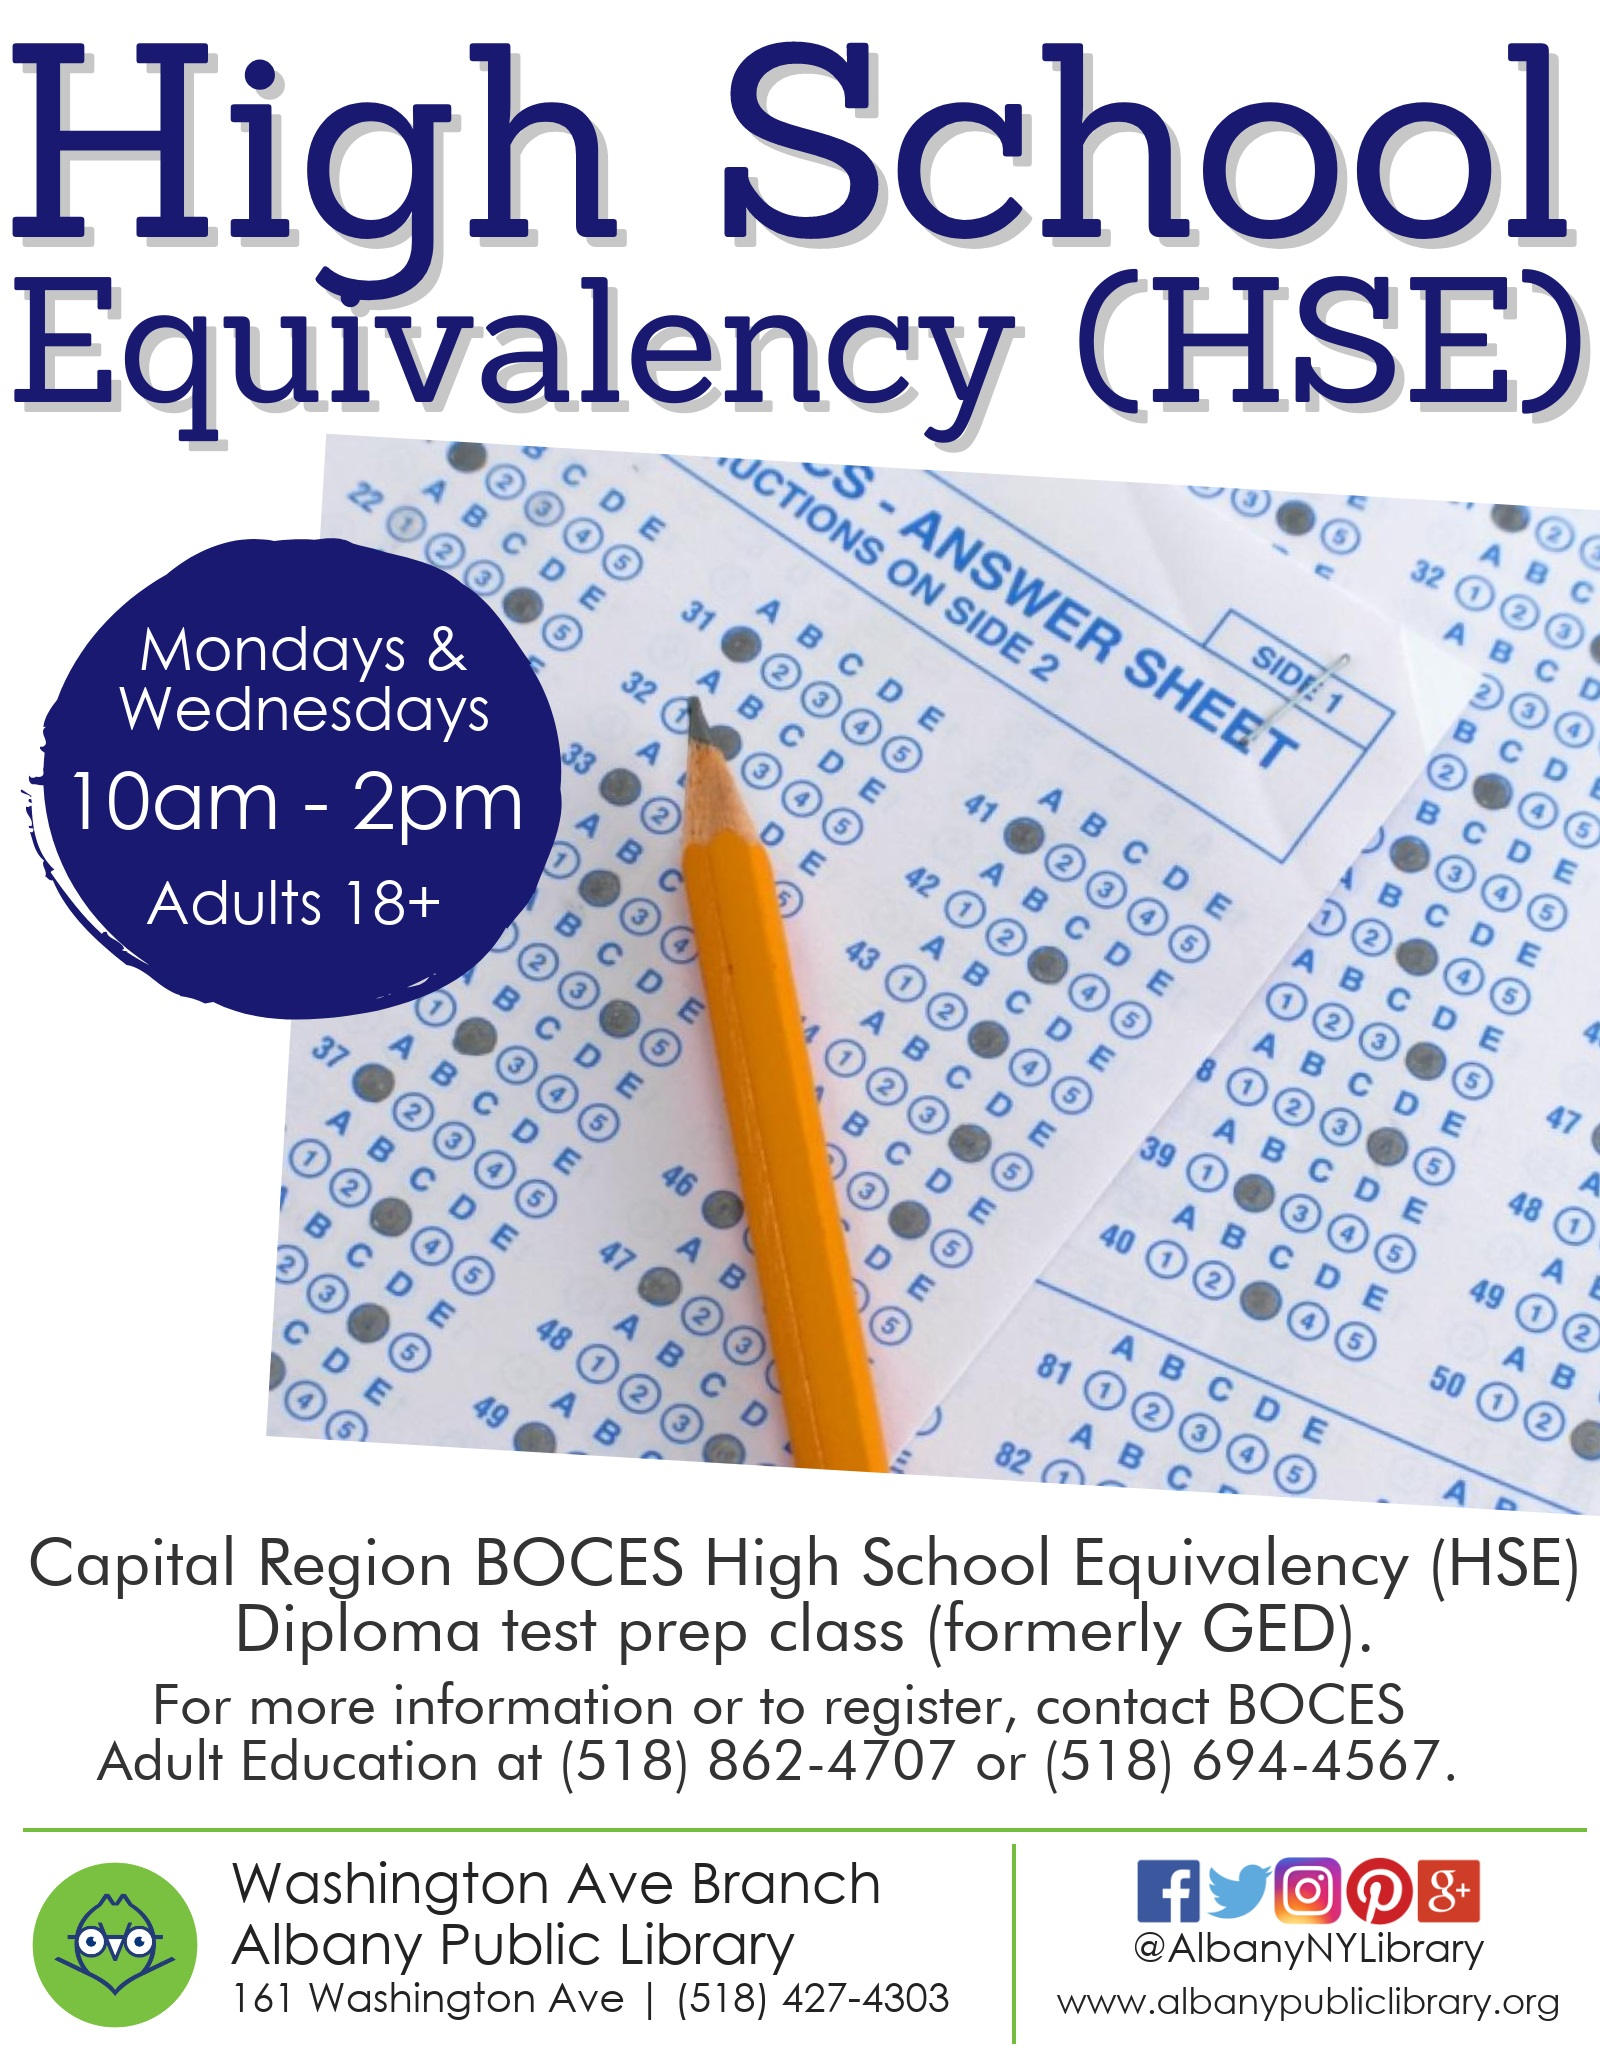 High School Equivalency (HSE) Diploma class-Capital Region BOCES